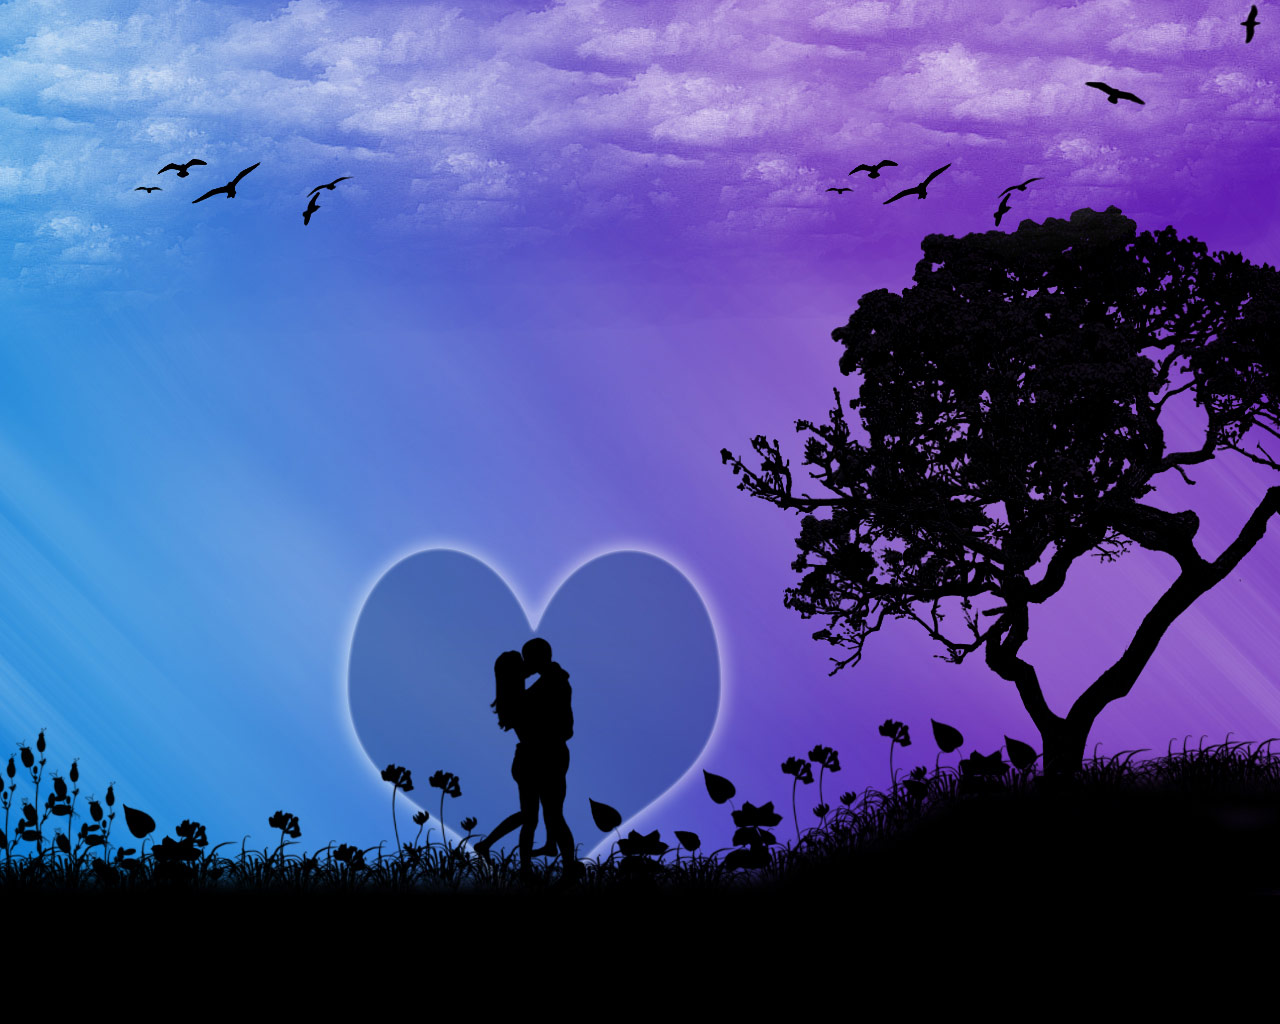 Love Wallpapers For Desktop : Free Wallpaper Dekstop: Real love wallpaper, love ...